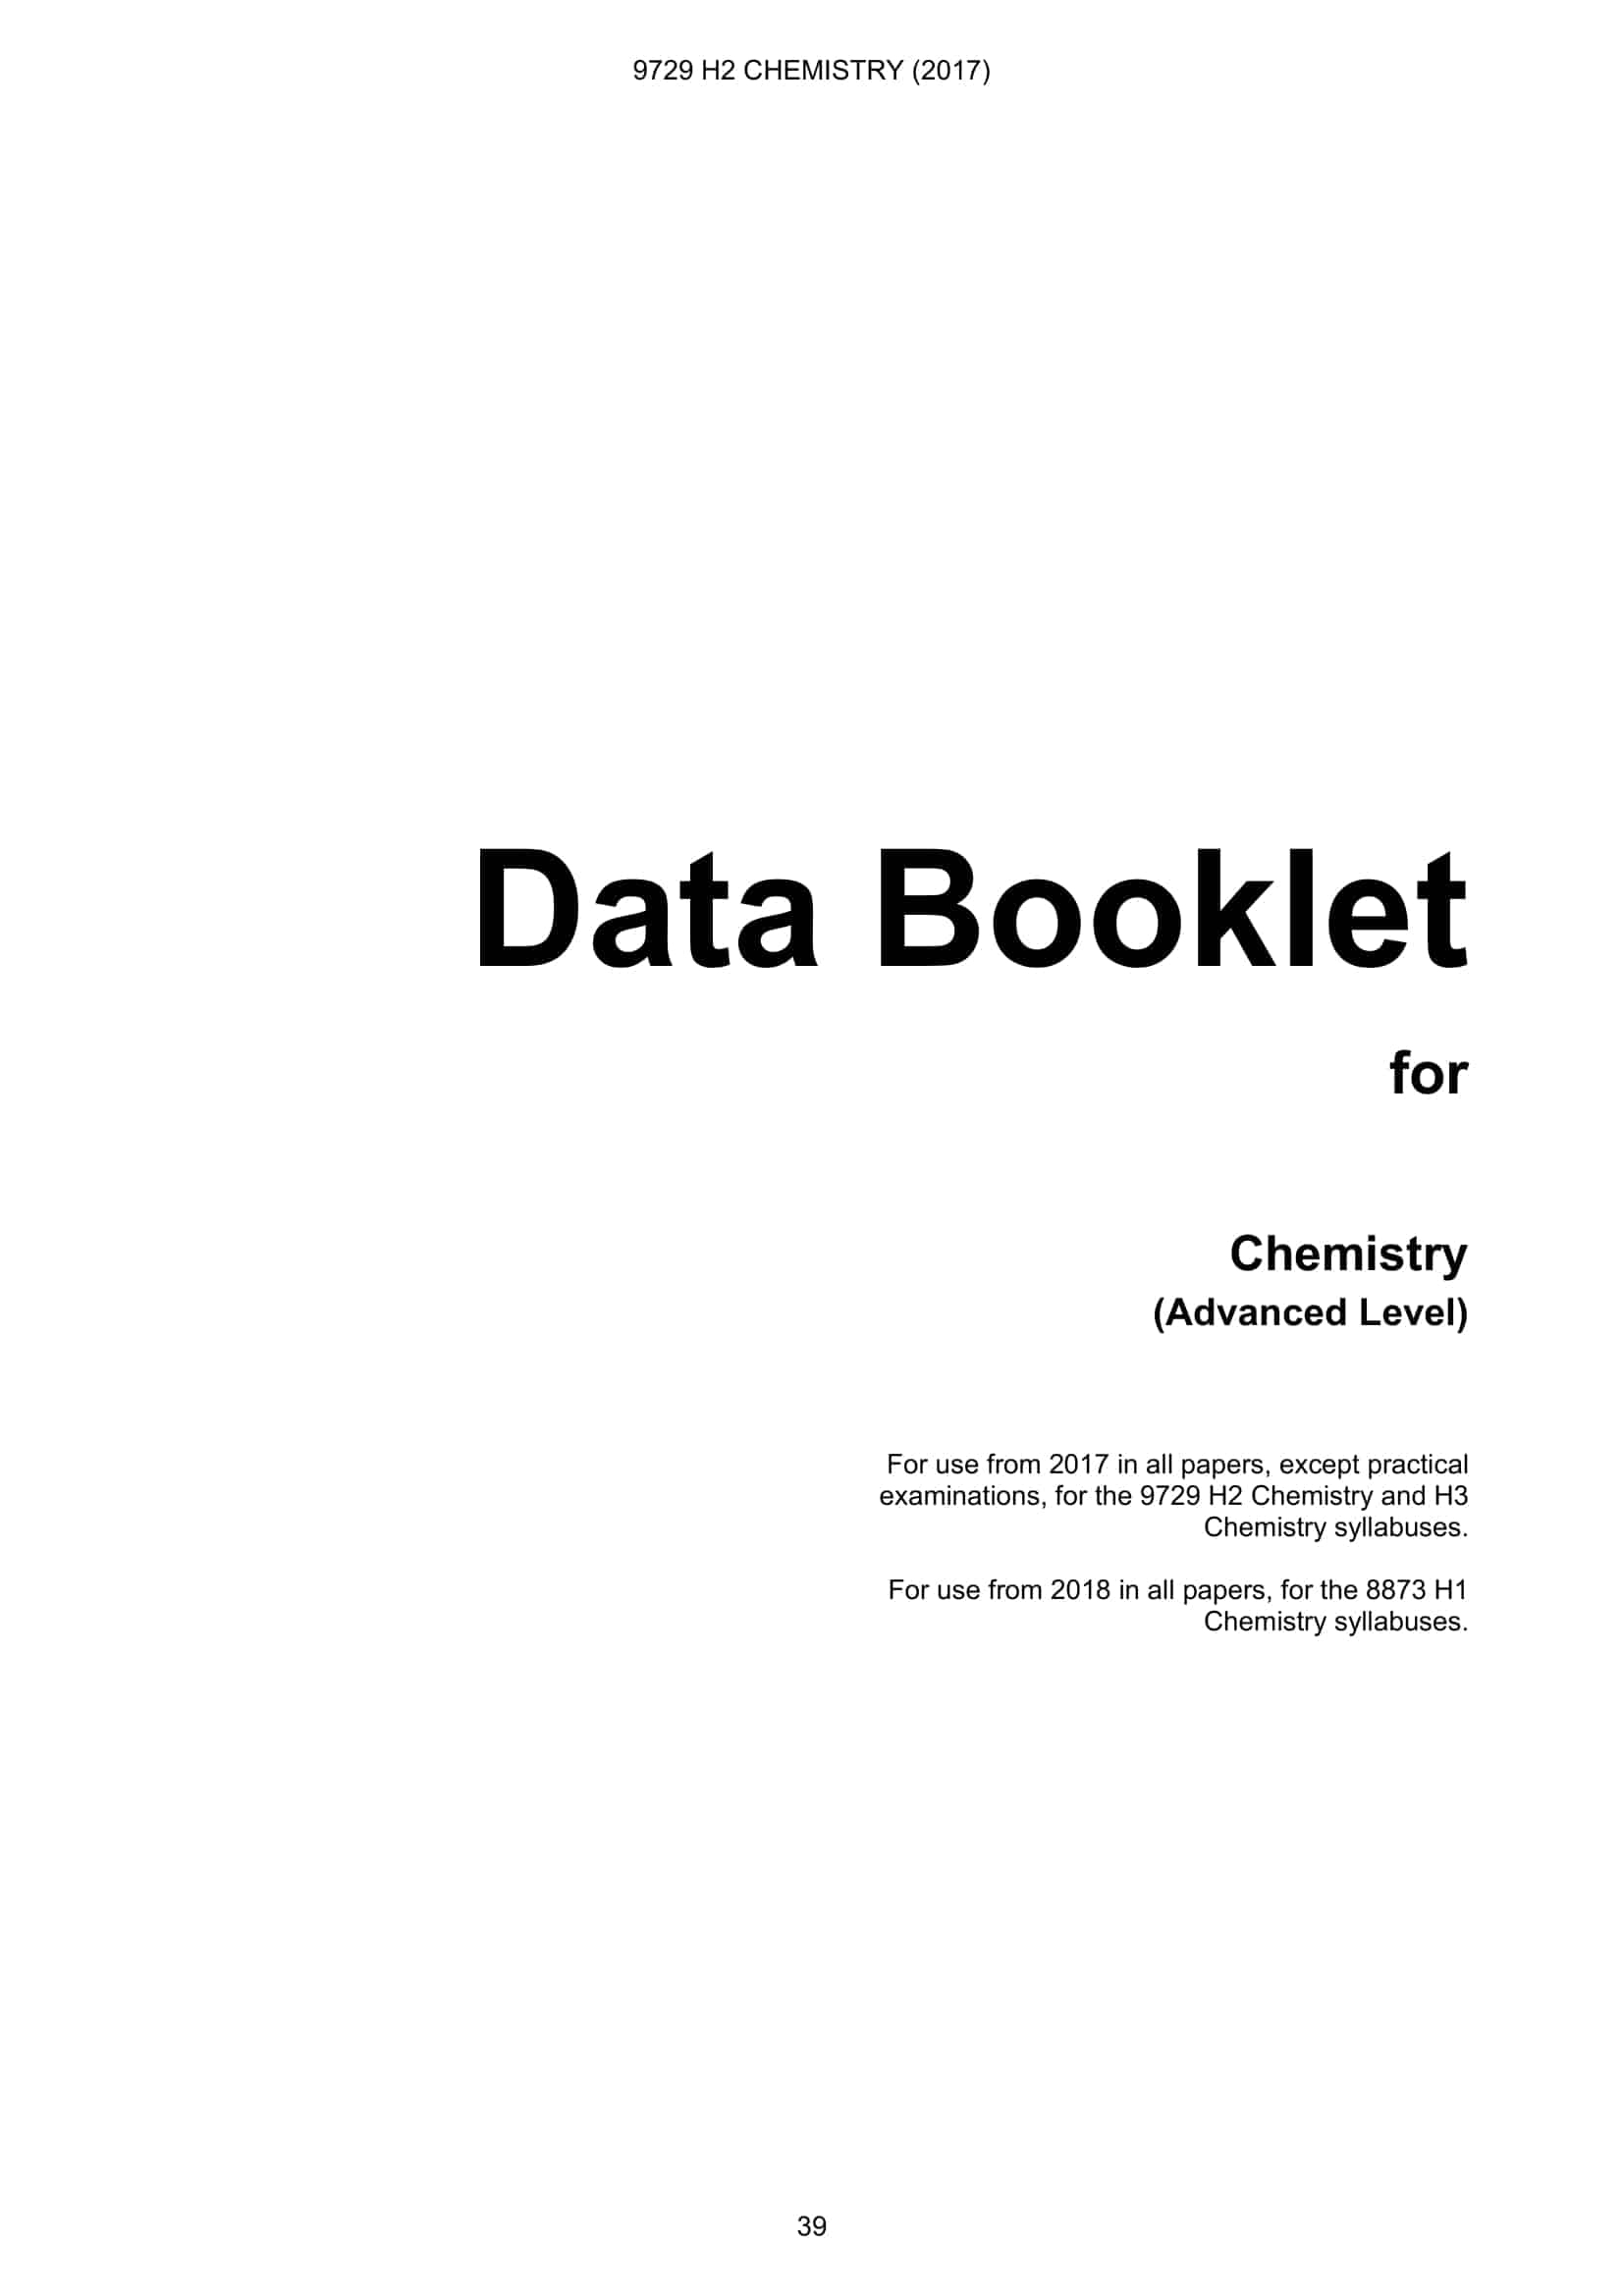 Data booklet chemistry a level data booklet for chemistry advanced level 1 urtaz Image collections